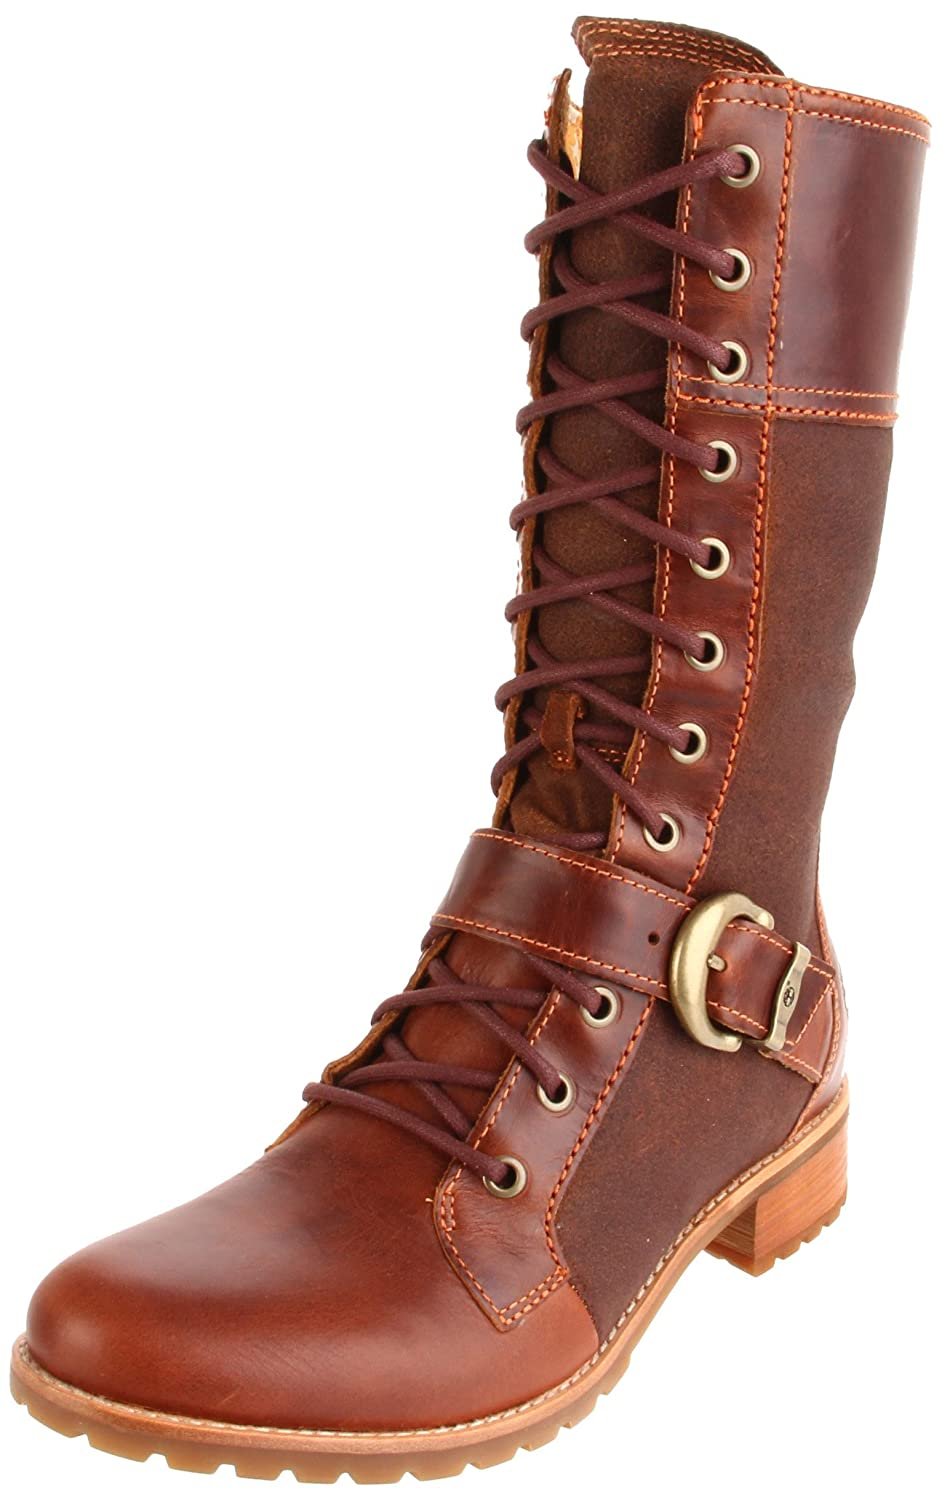 Save up to 50% off select fashion and cold weather boots on Dec-10-2011